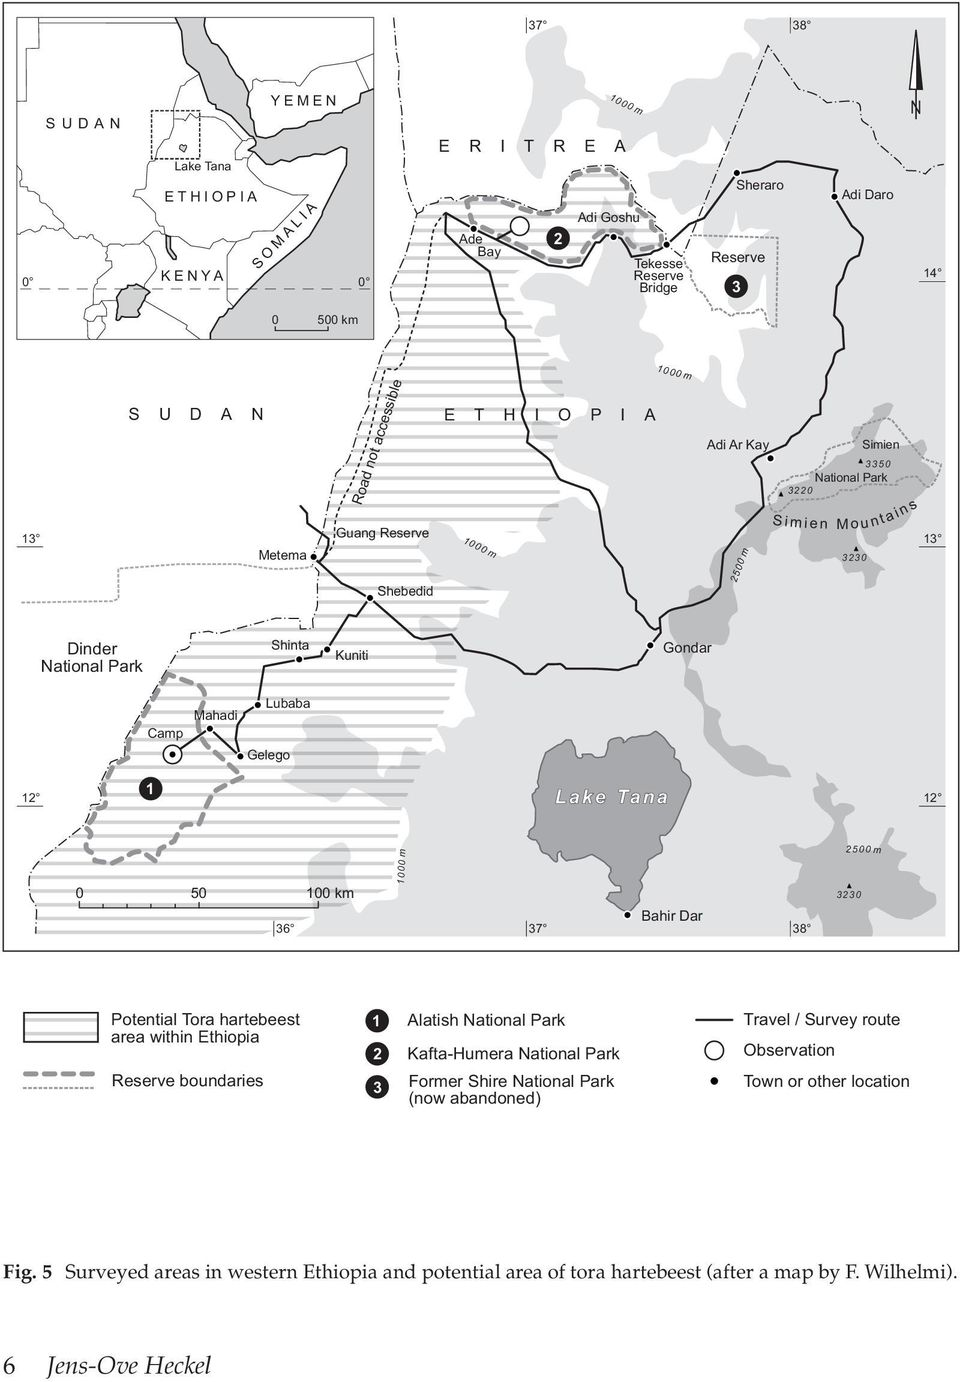 Lubaba Gelego 12 1 12 0 50 36 100 km 1000 m 37 Bahir Dar 38 2500 m 3230 Potential Tora hartebeest area within Ethiopia Reserve boundaries 1 2 3 Alatish National Park Kafta-Humera National Park Former